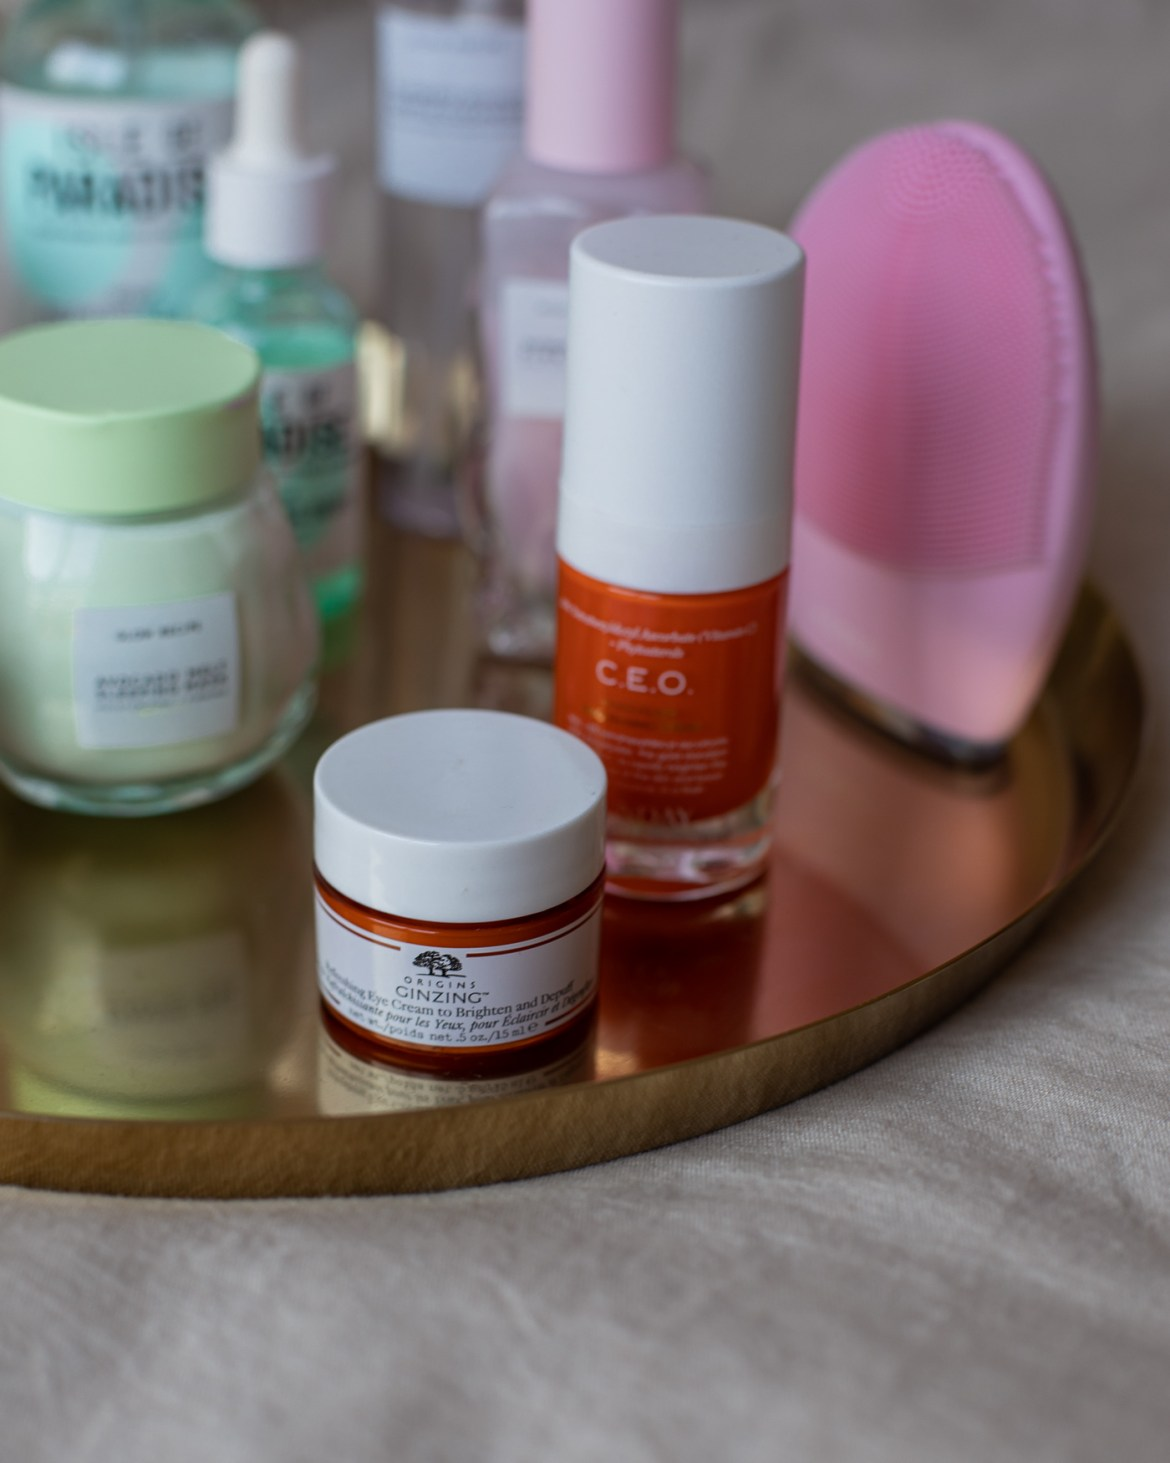 Origins Ginseng eye cream review for self-care at home